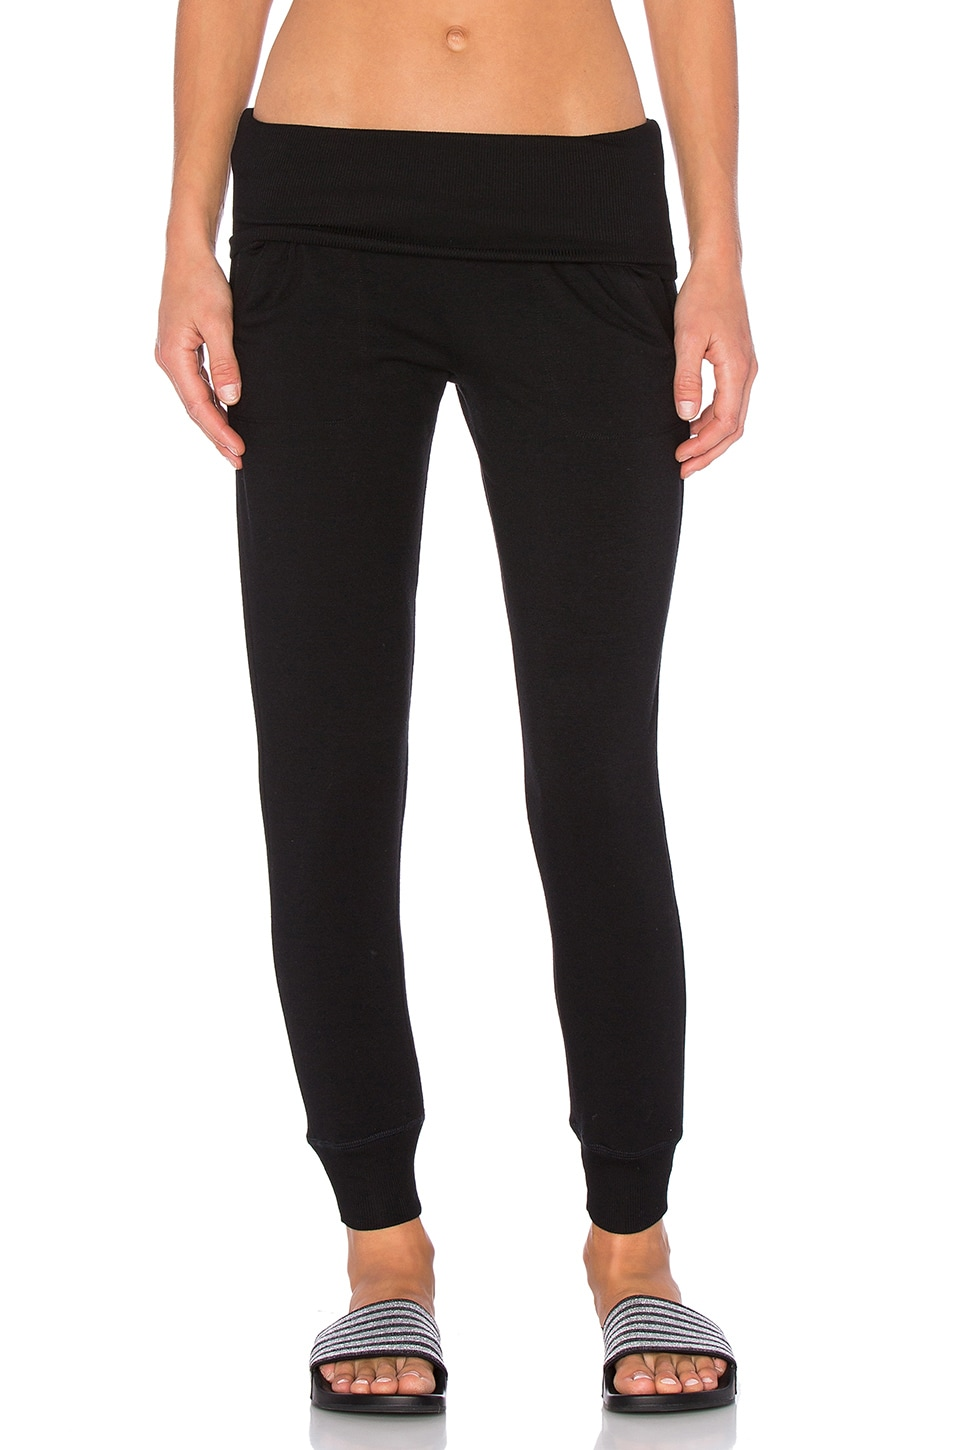 Beyond Yoga Cozy Fleece Foldover Sweatpant in Black